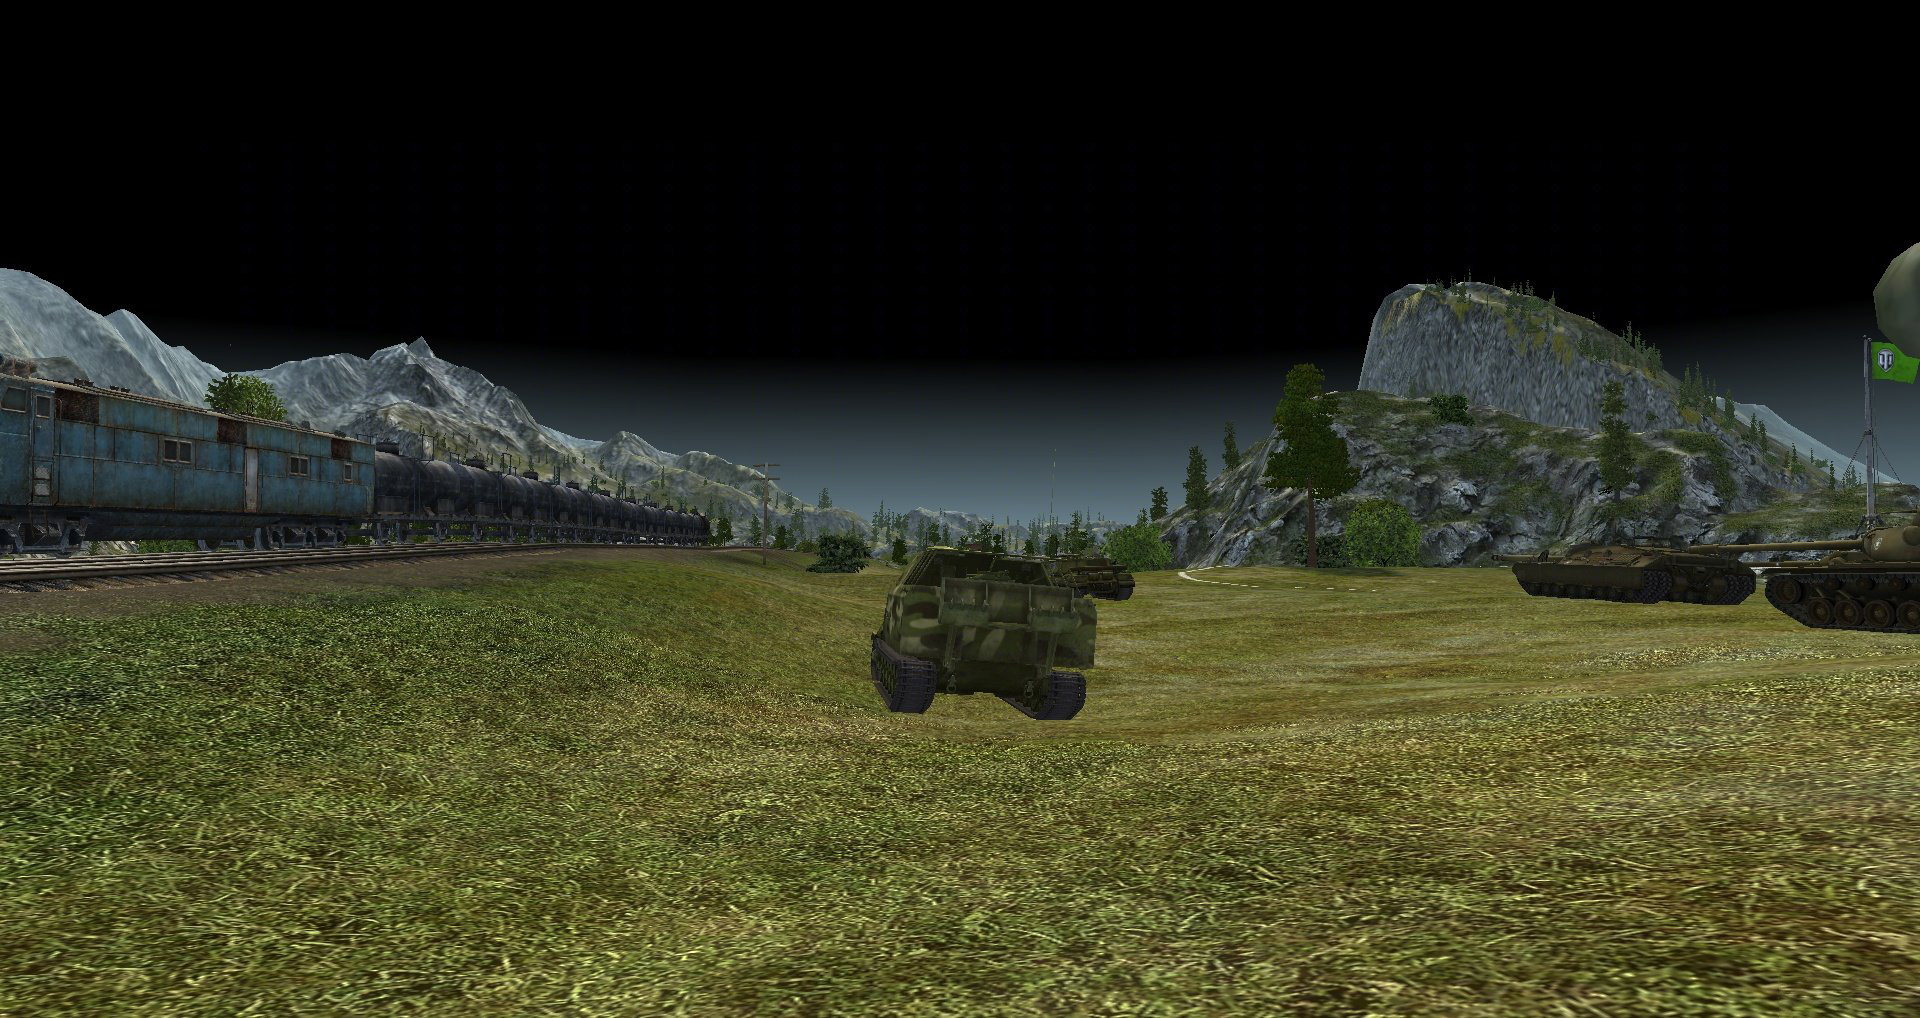 world of tanks mod for fps